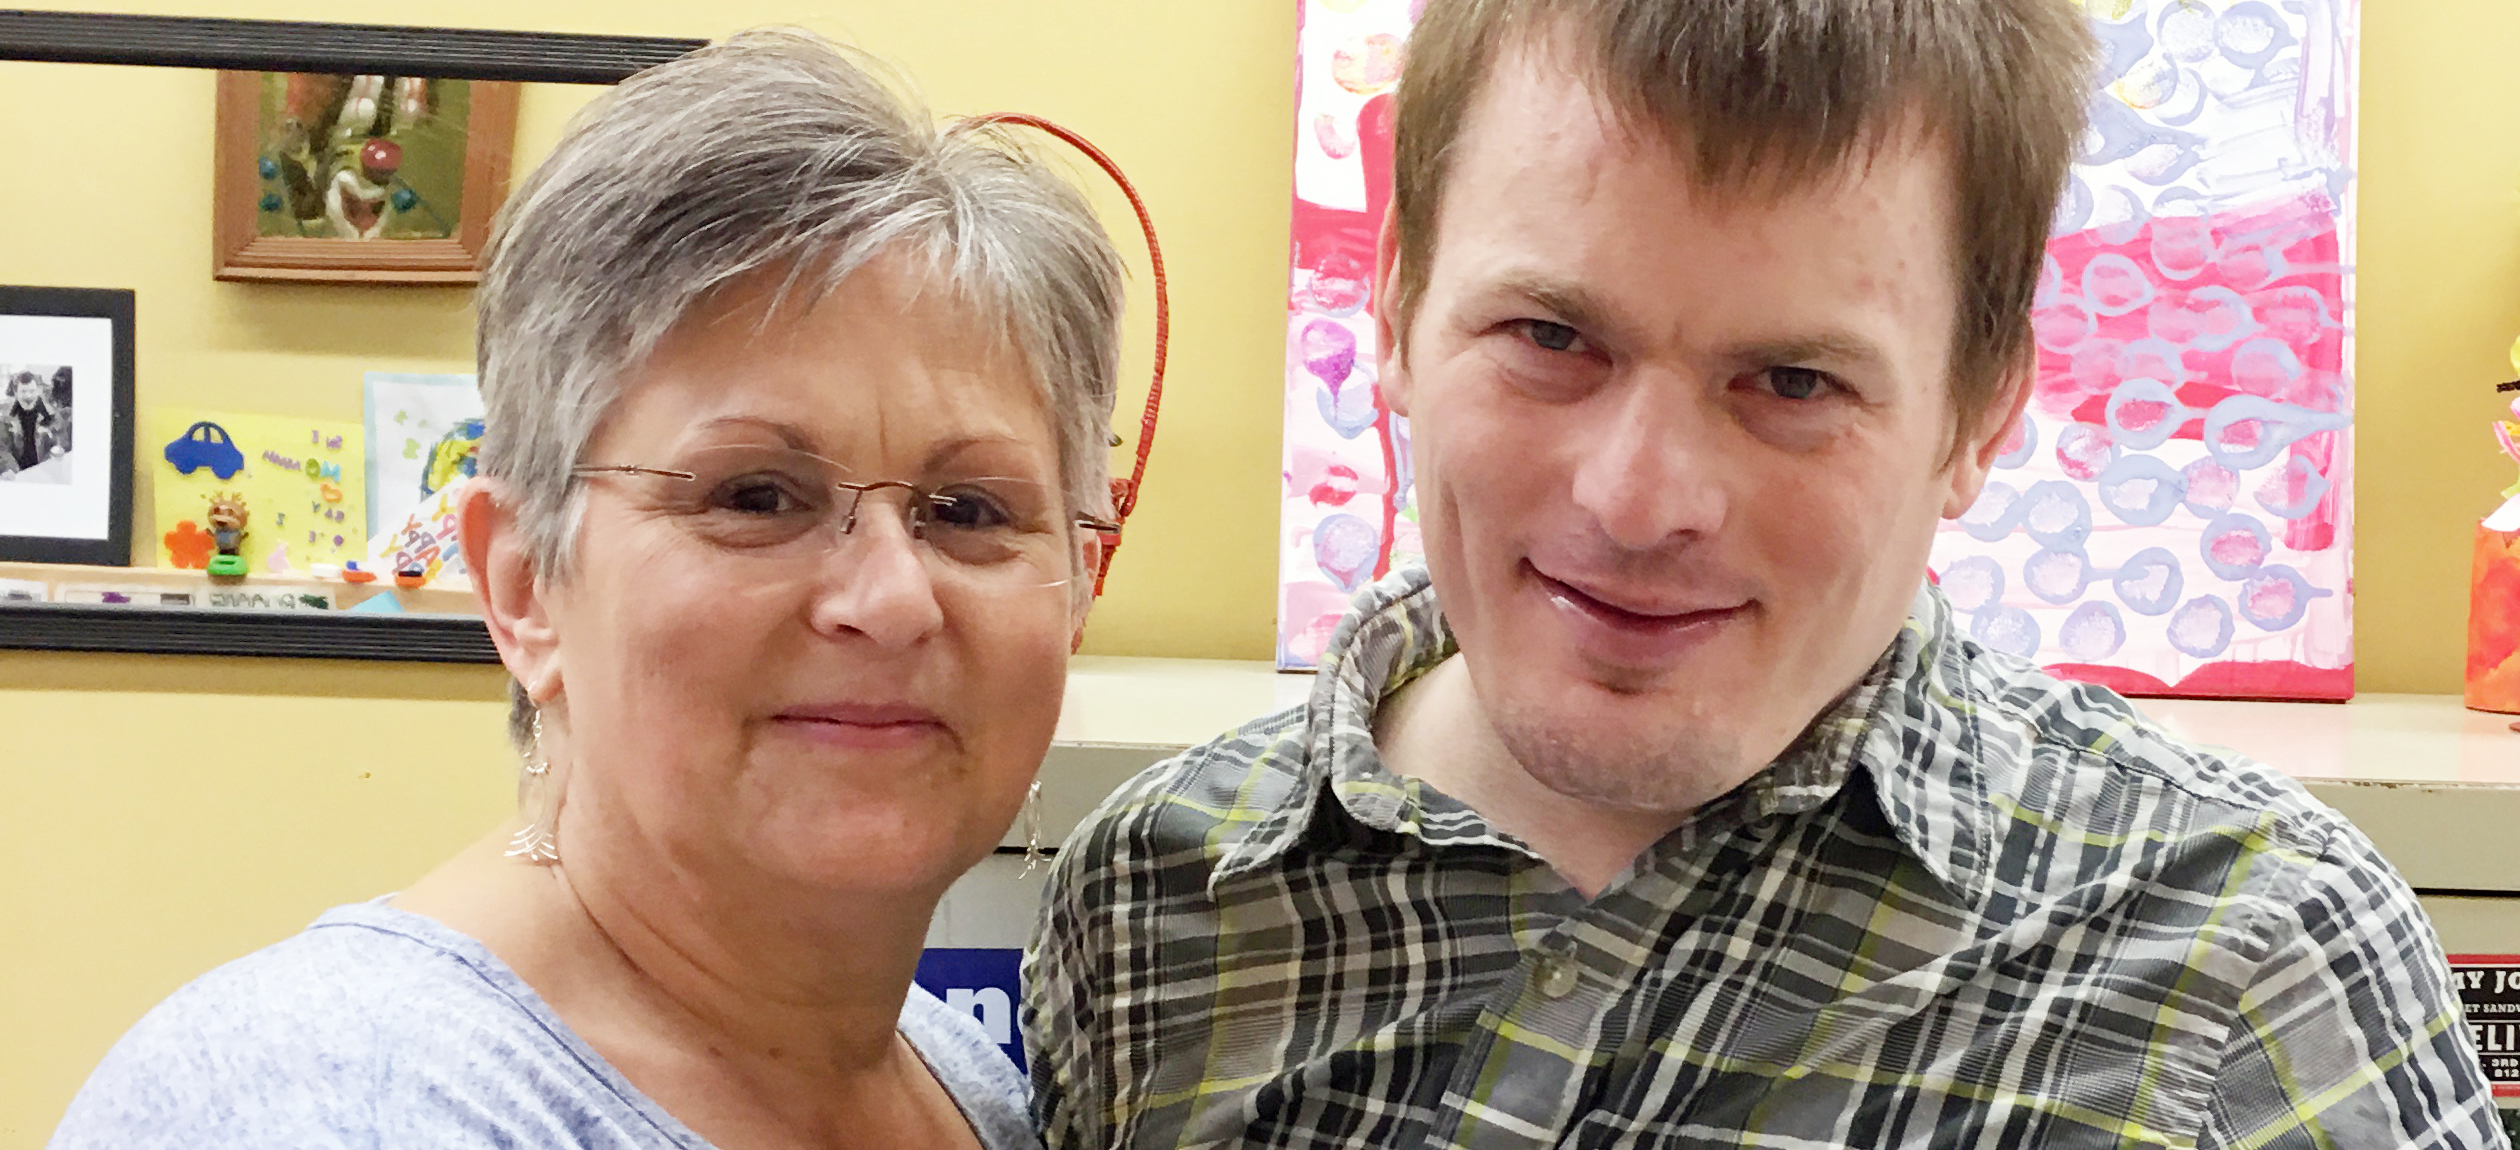 A mother and her son with developmental disabilities stand together and smile.